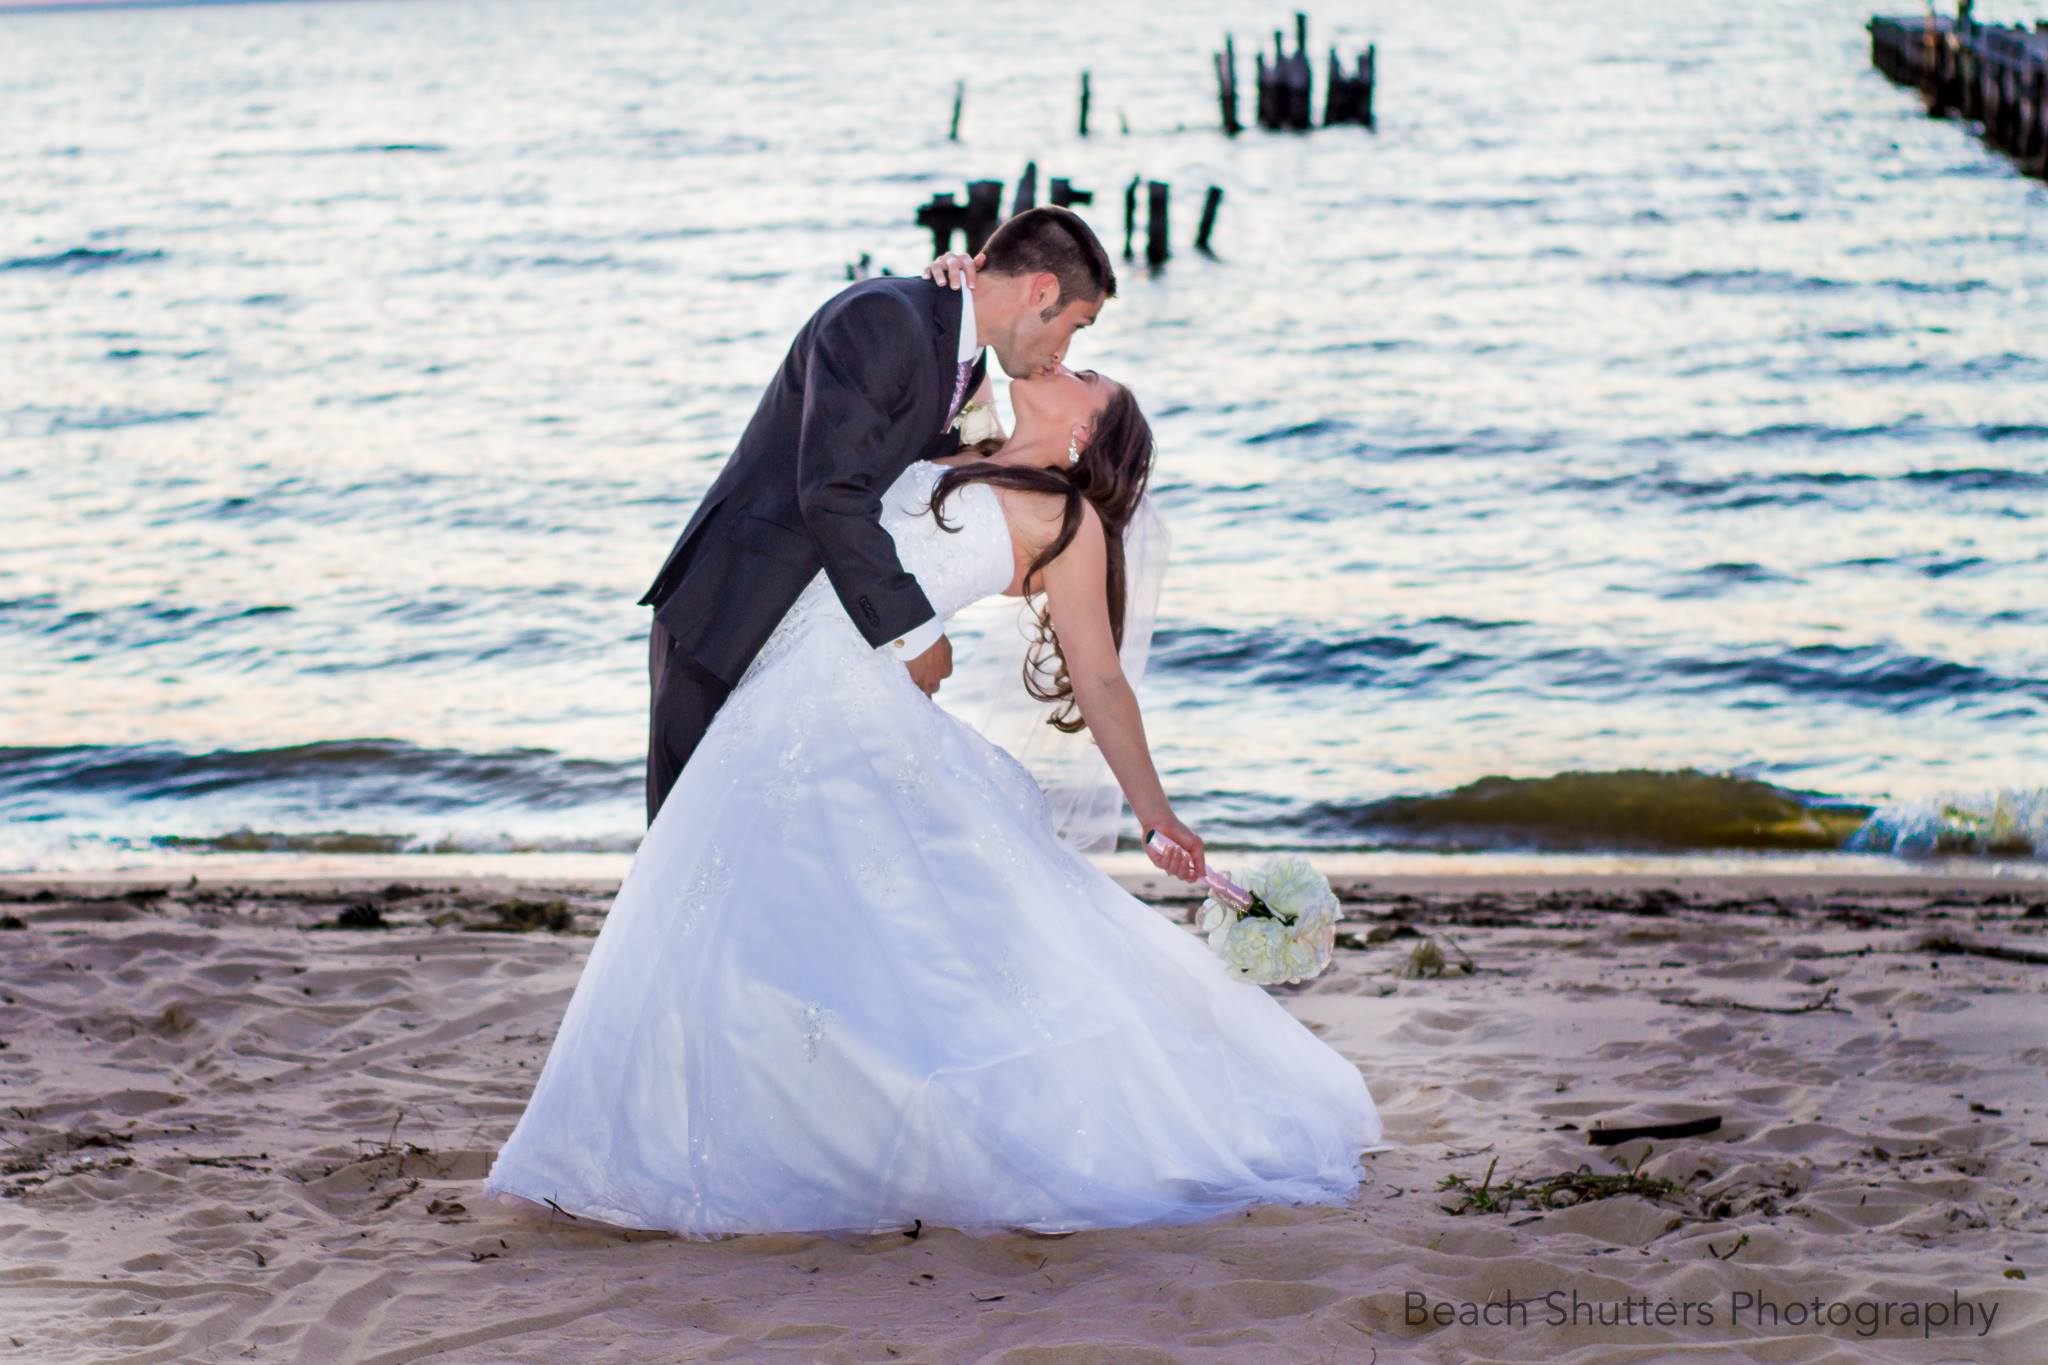 Beautiful couple in Wedding pose in Fairhope, Al taken by www.beachshutters.com